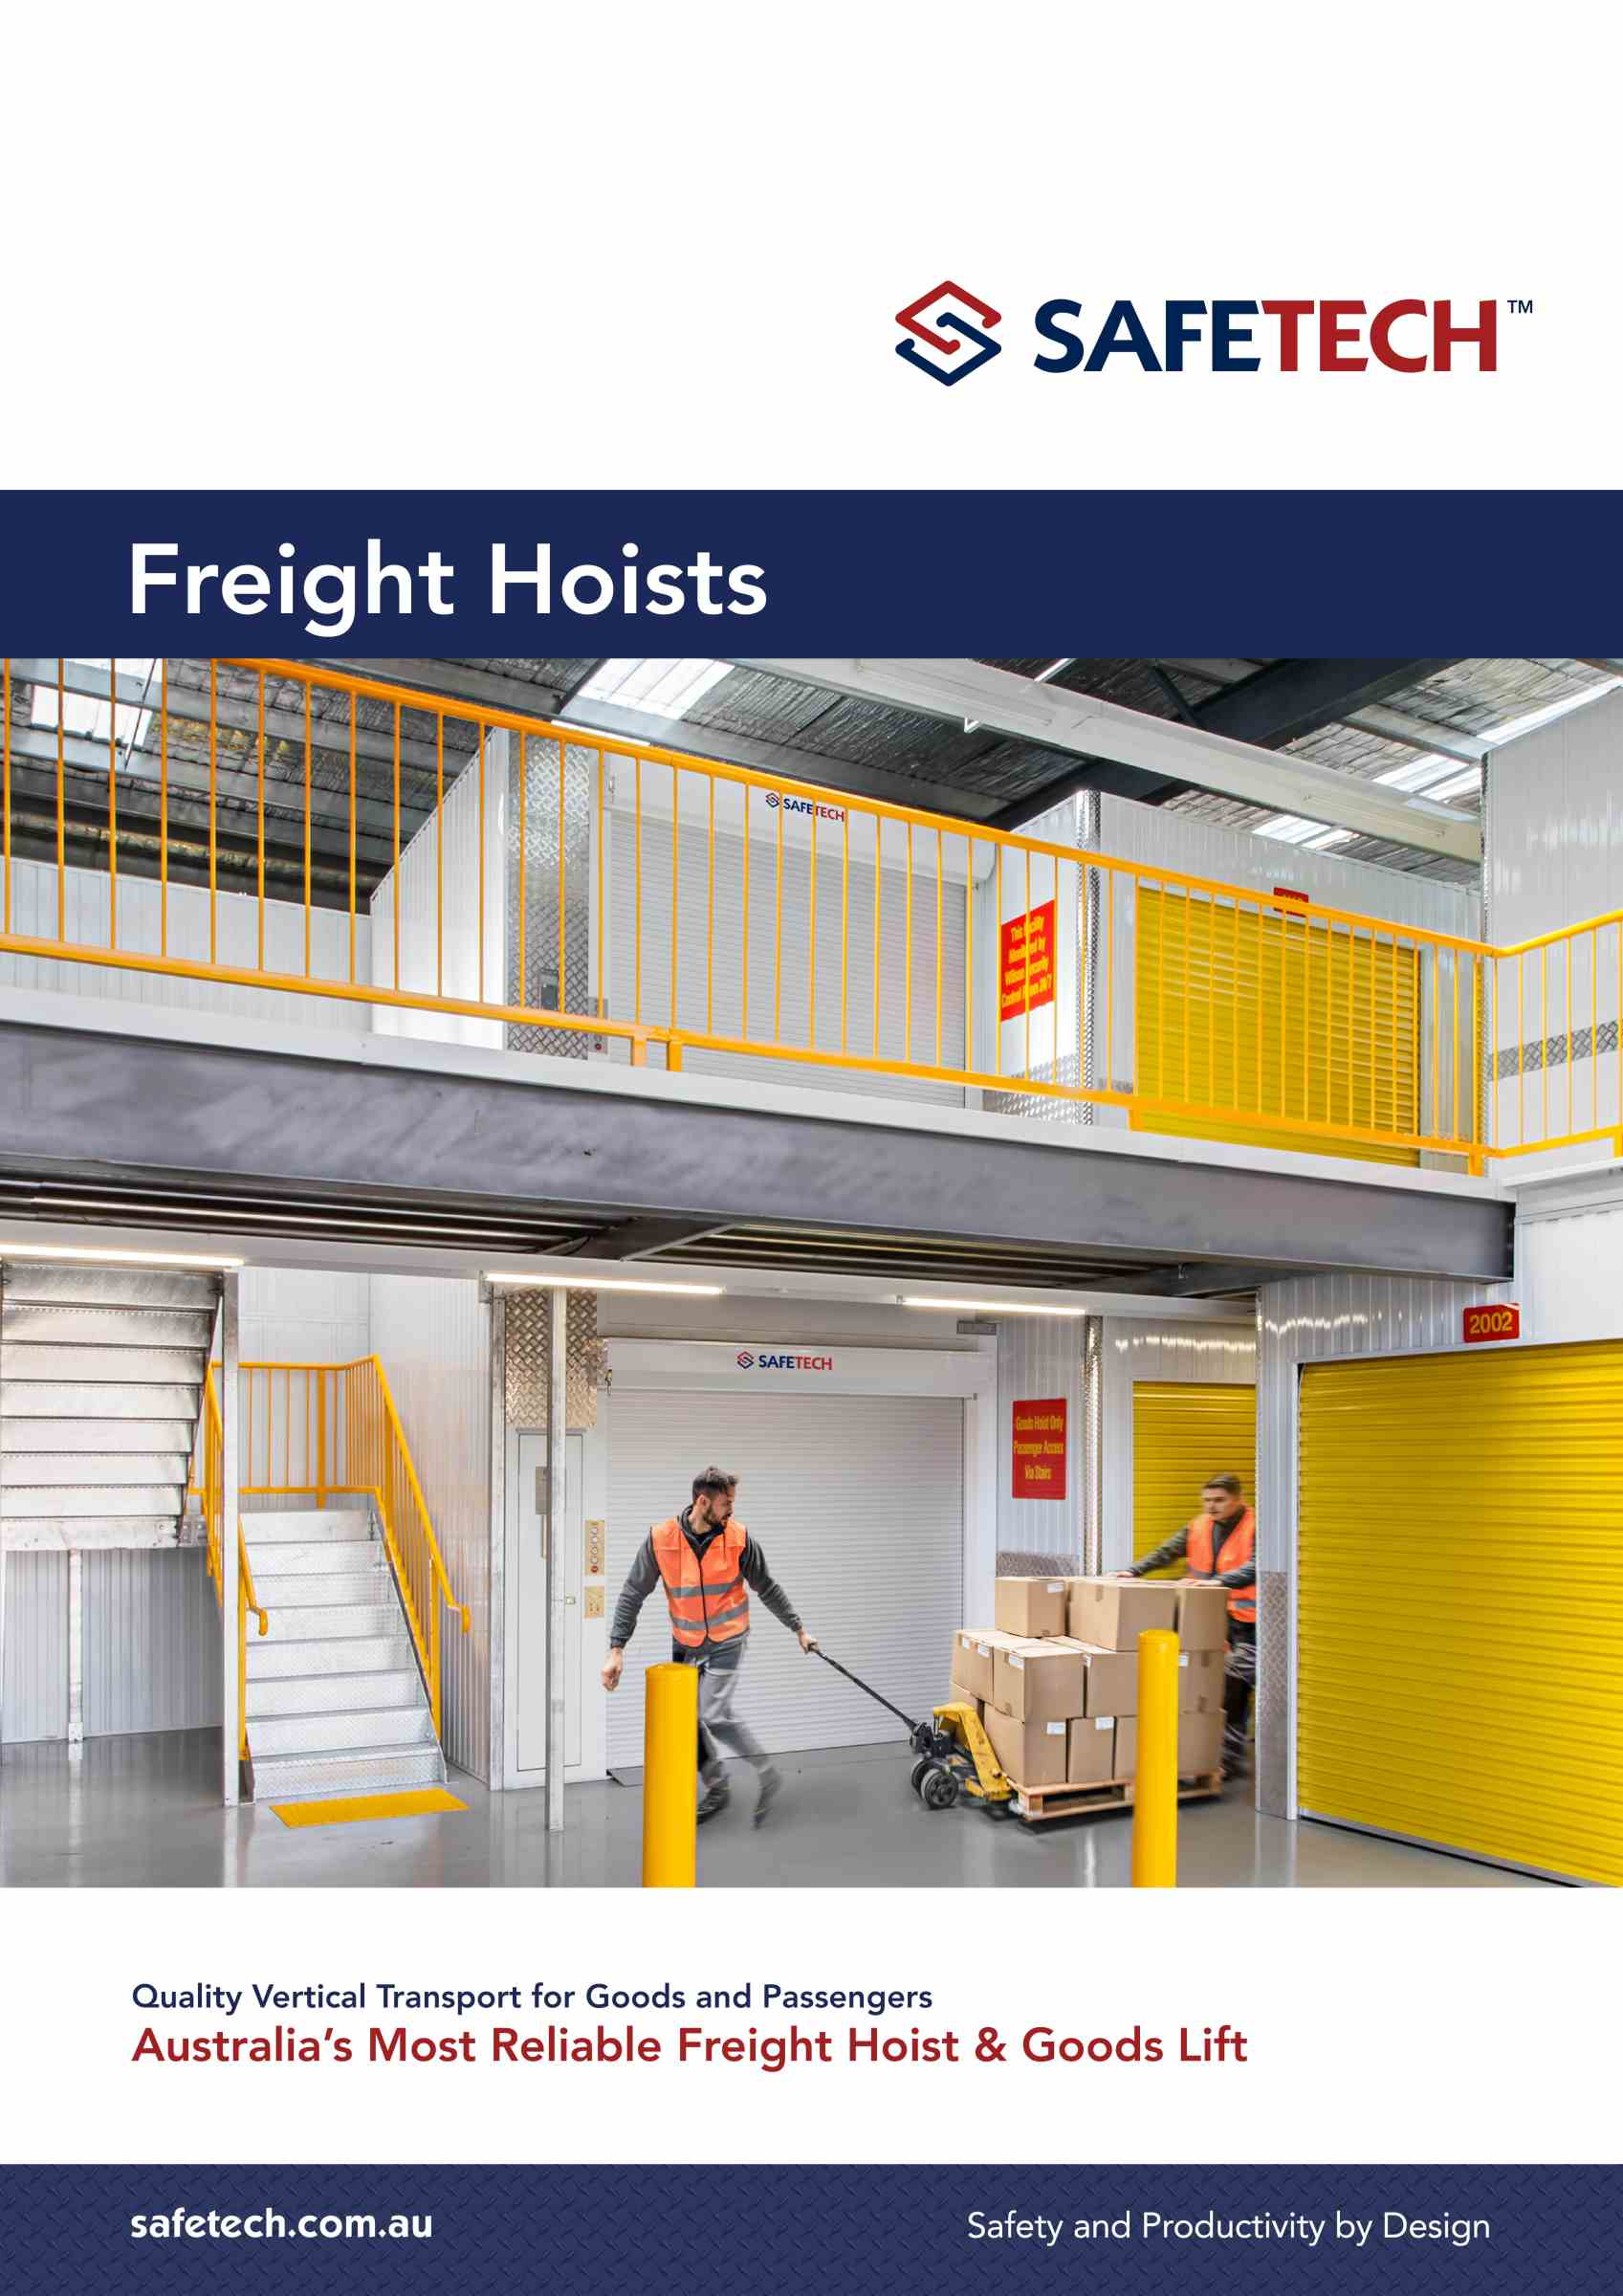 Safetech Freight Hoists Brochure